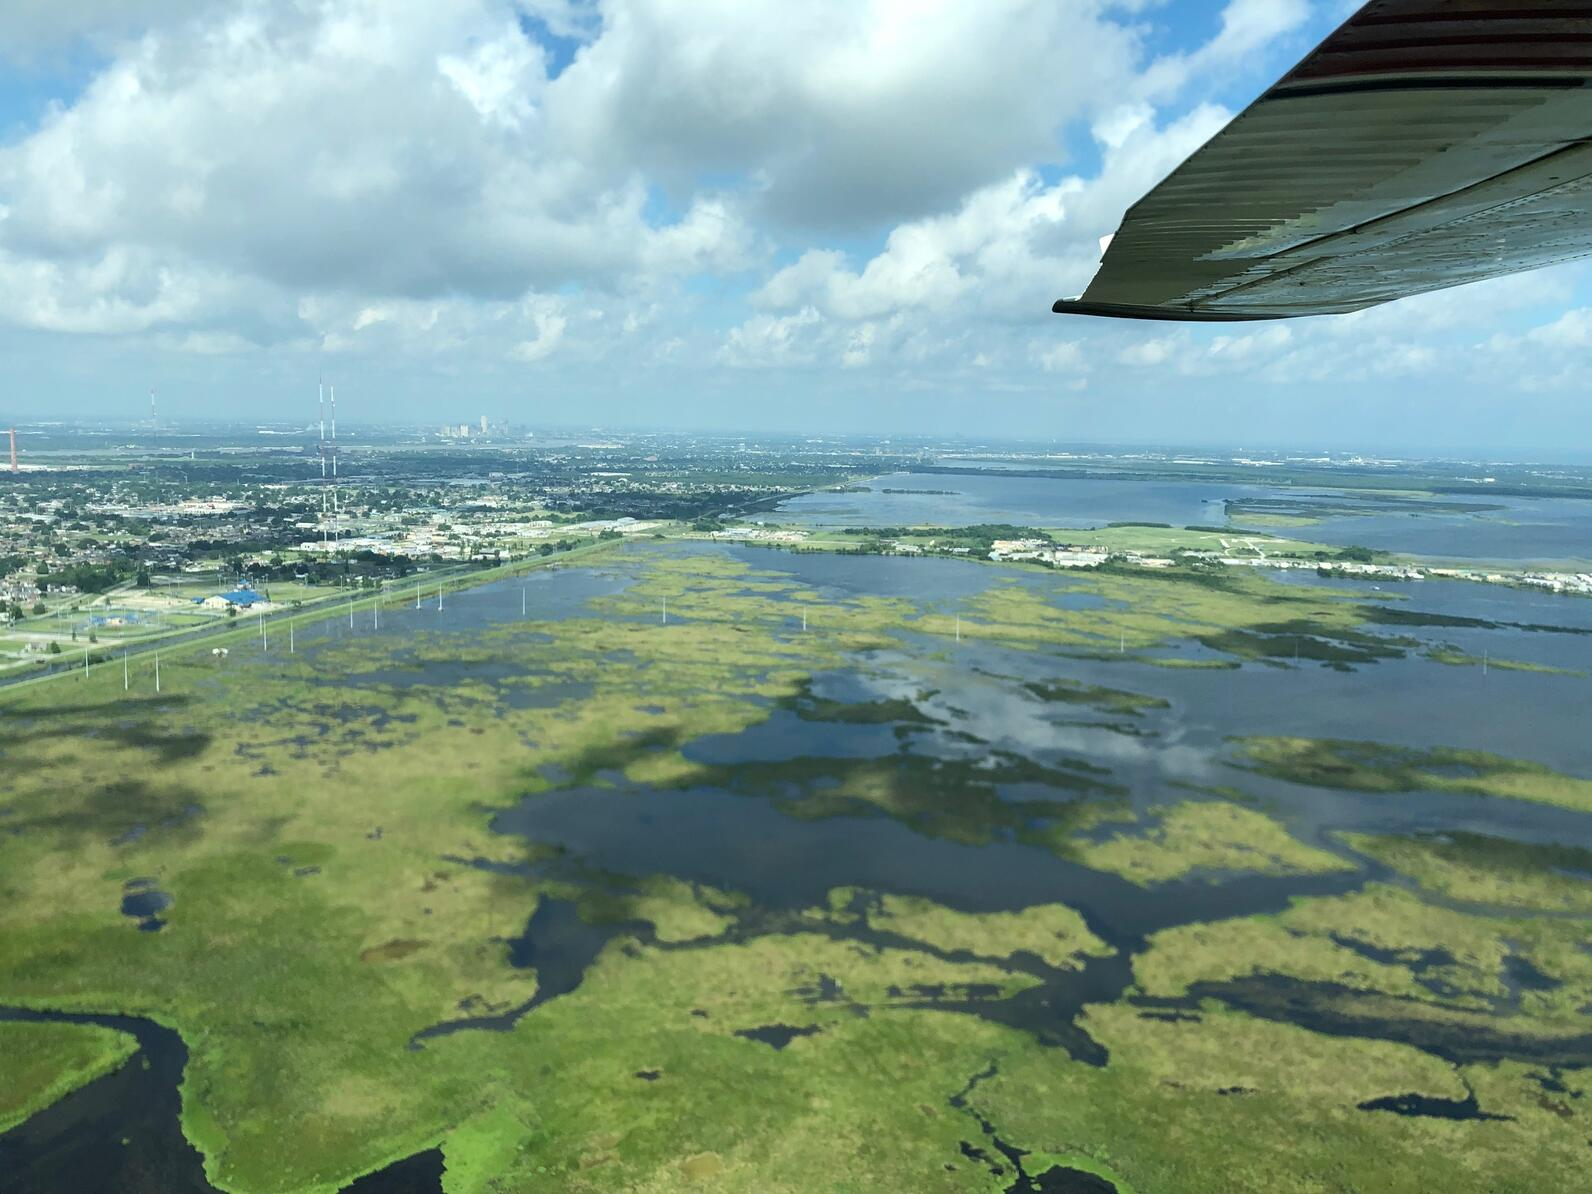 Unhealthy marsh next to coastal communities in Louisiana.